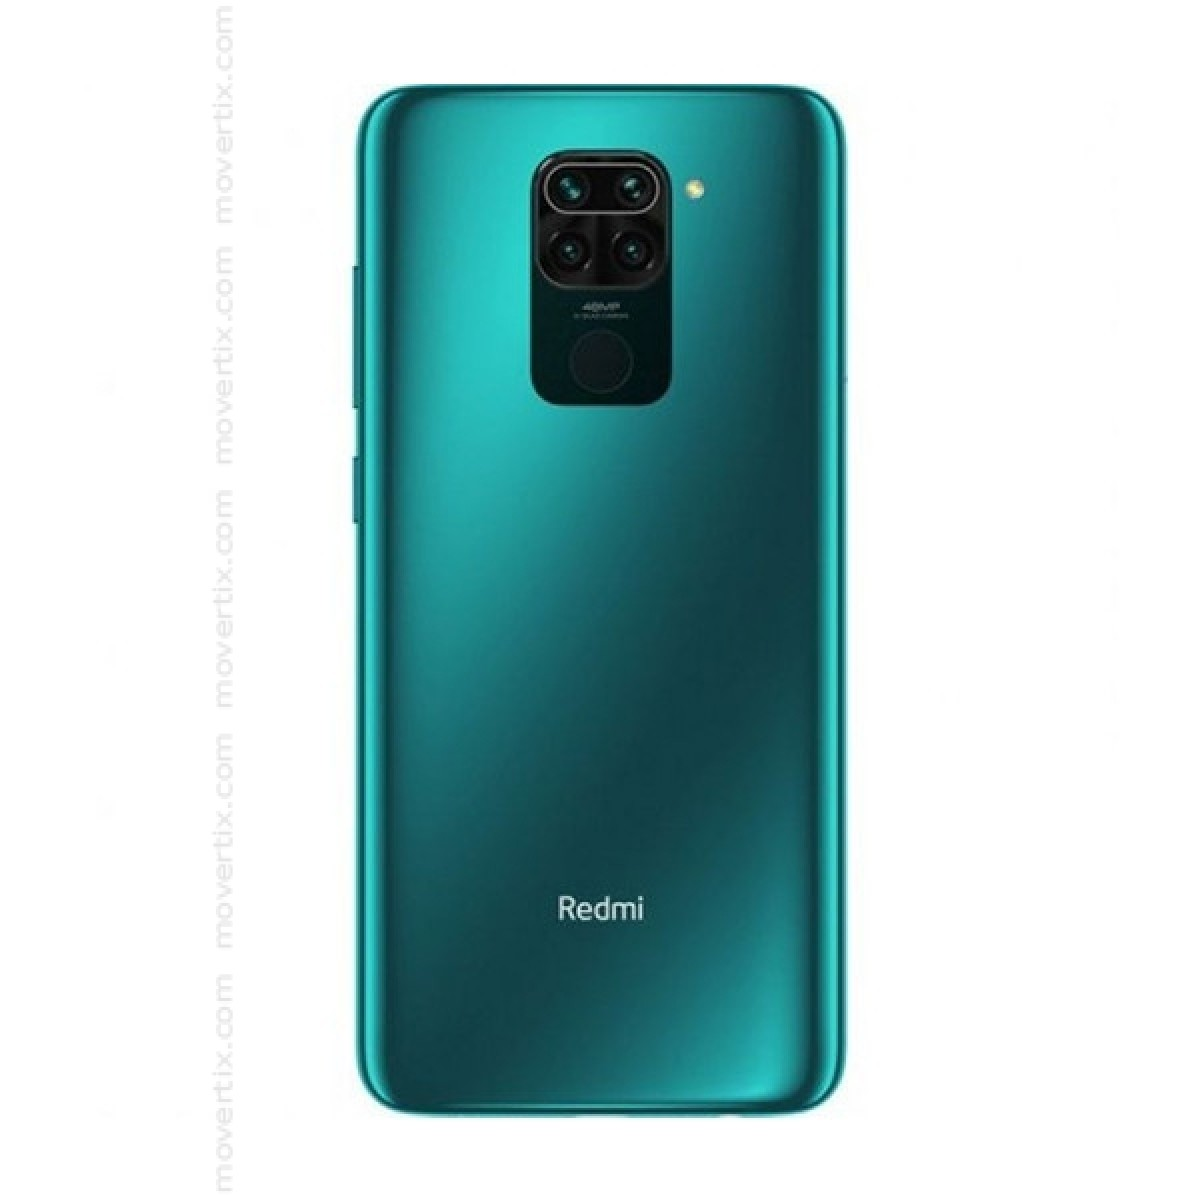 Xiaomi Redmi Note 9 Dual SIM Forest Green 64GB and 3GB RAM ...